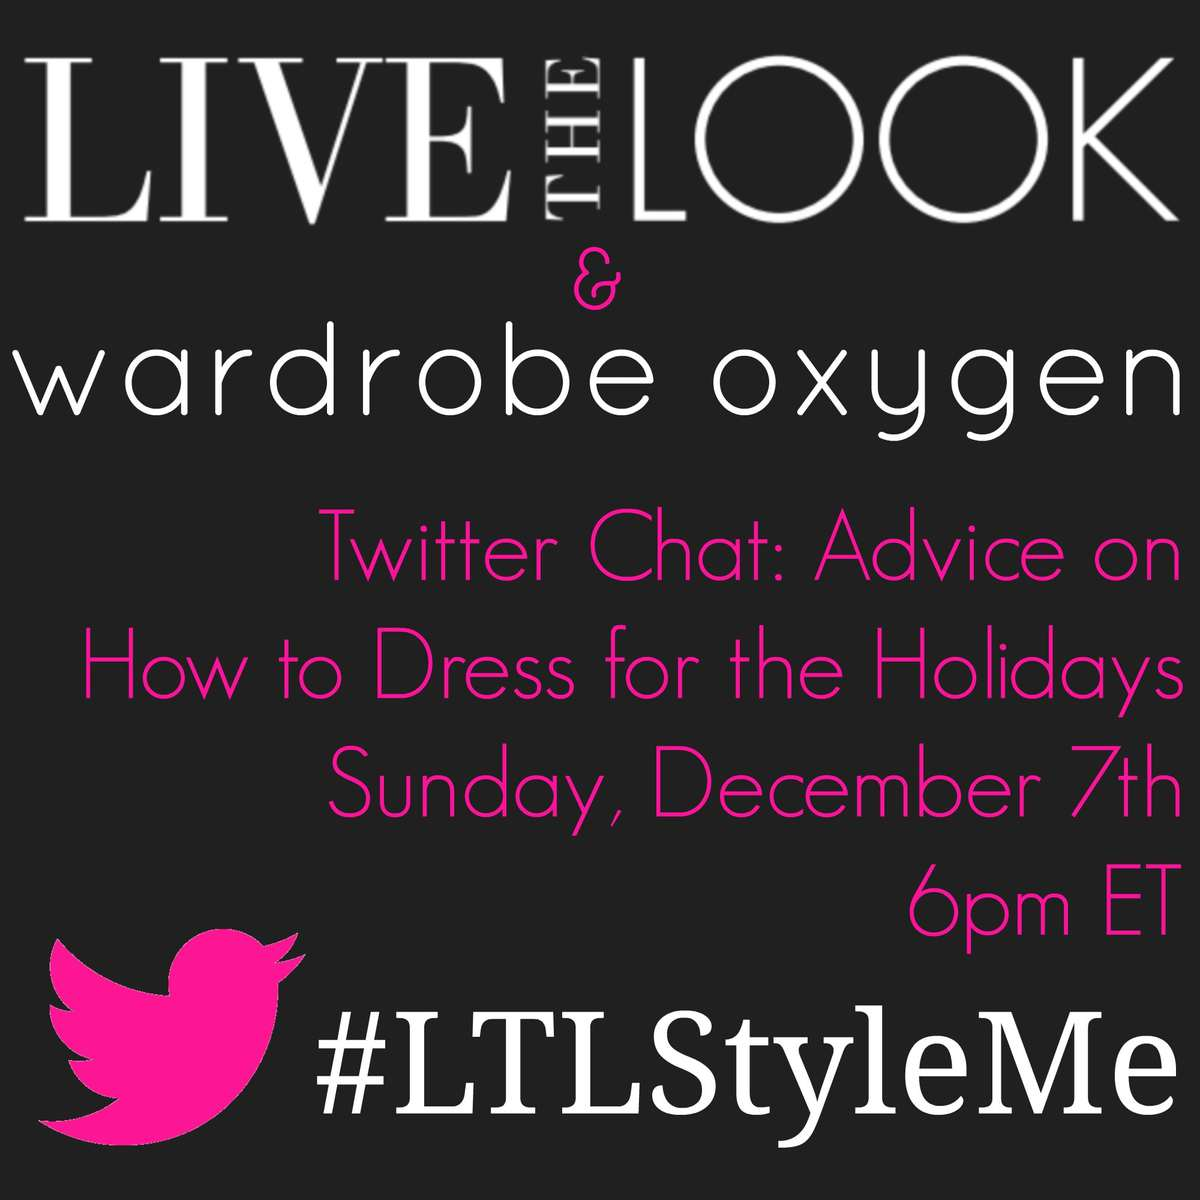 LiveTheLook and Wardrobe Oxygen Twitter Chat on How to Dress for the Holidays 12/7 6pm #LTLStyleMe